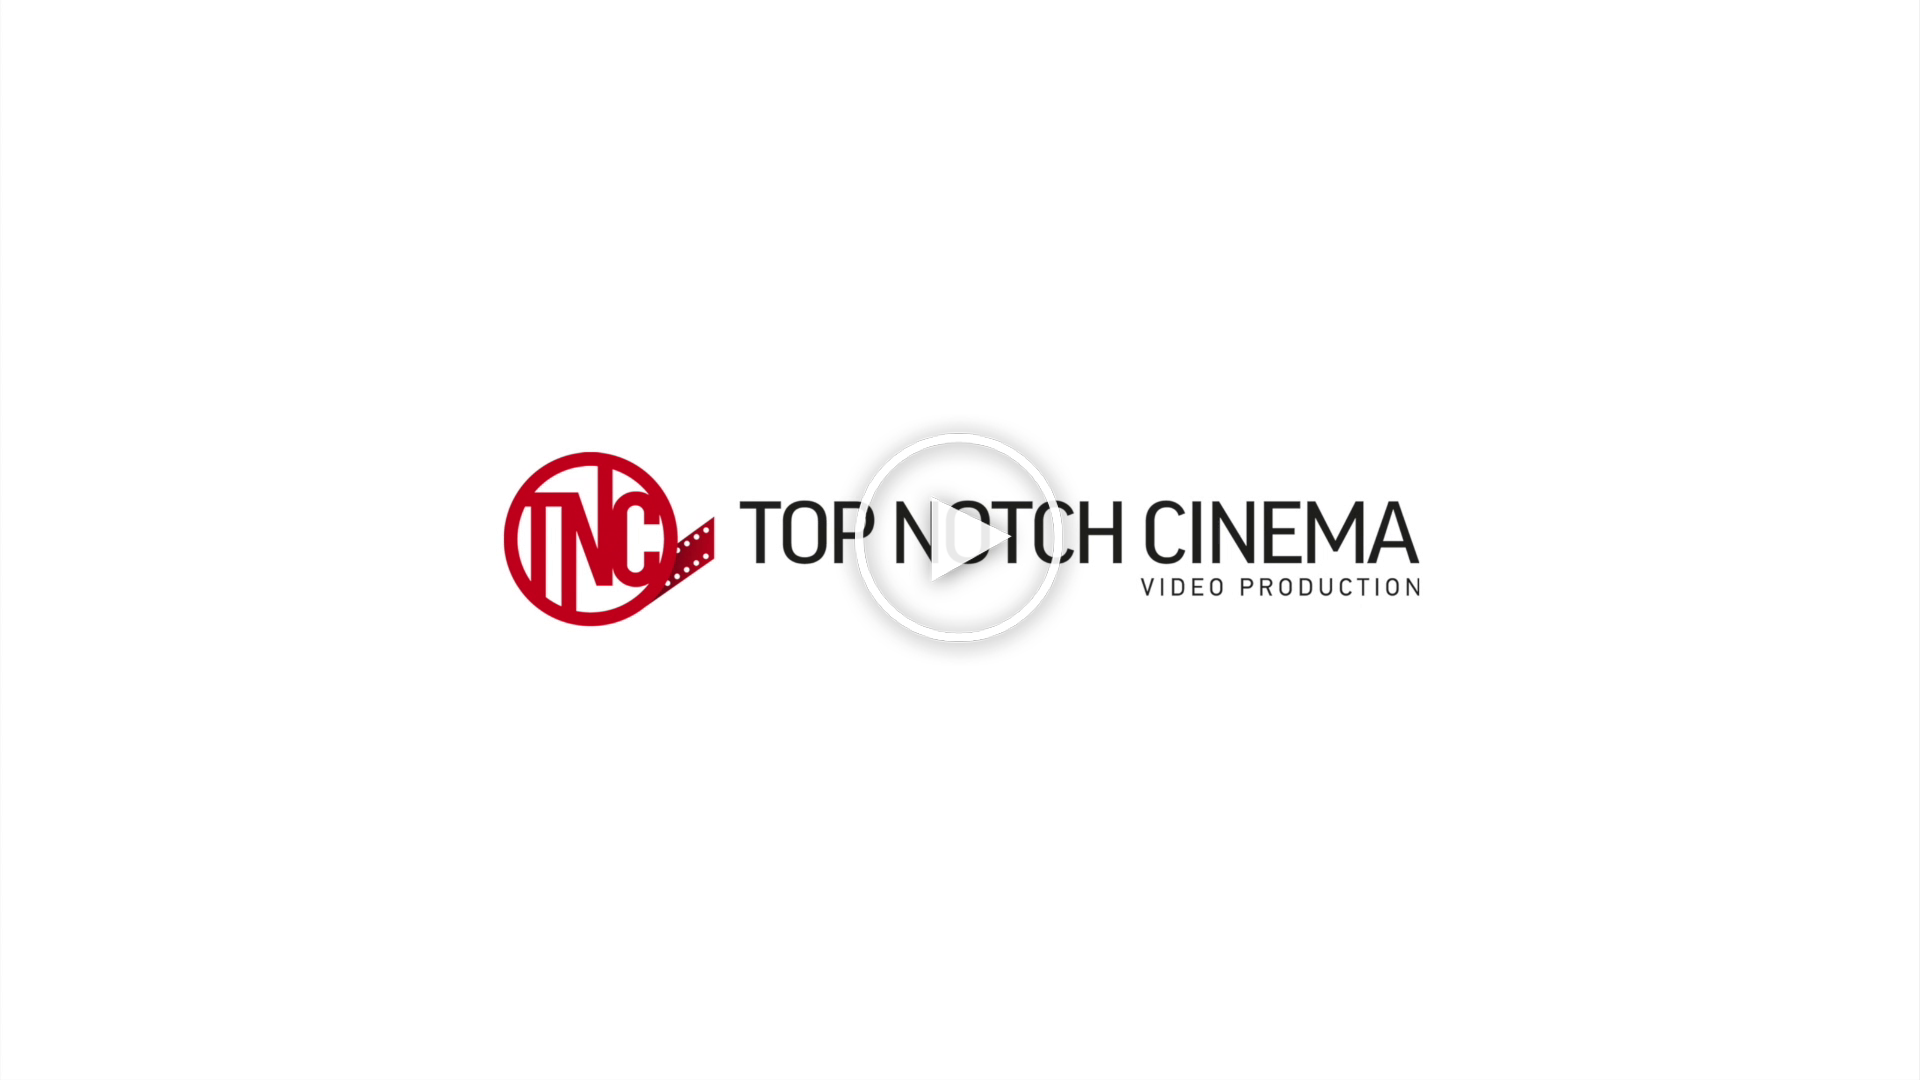 Top Notch Cinema - Video Production